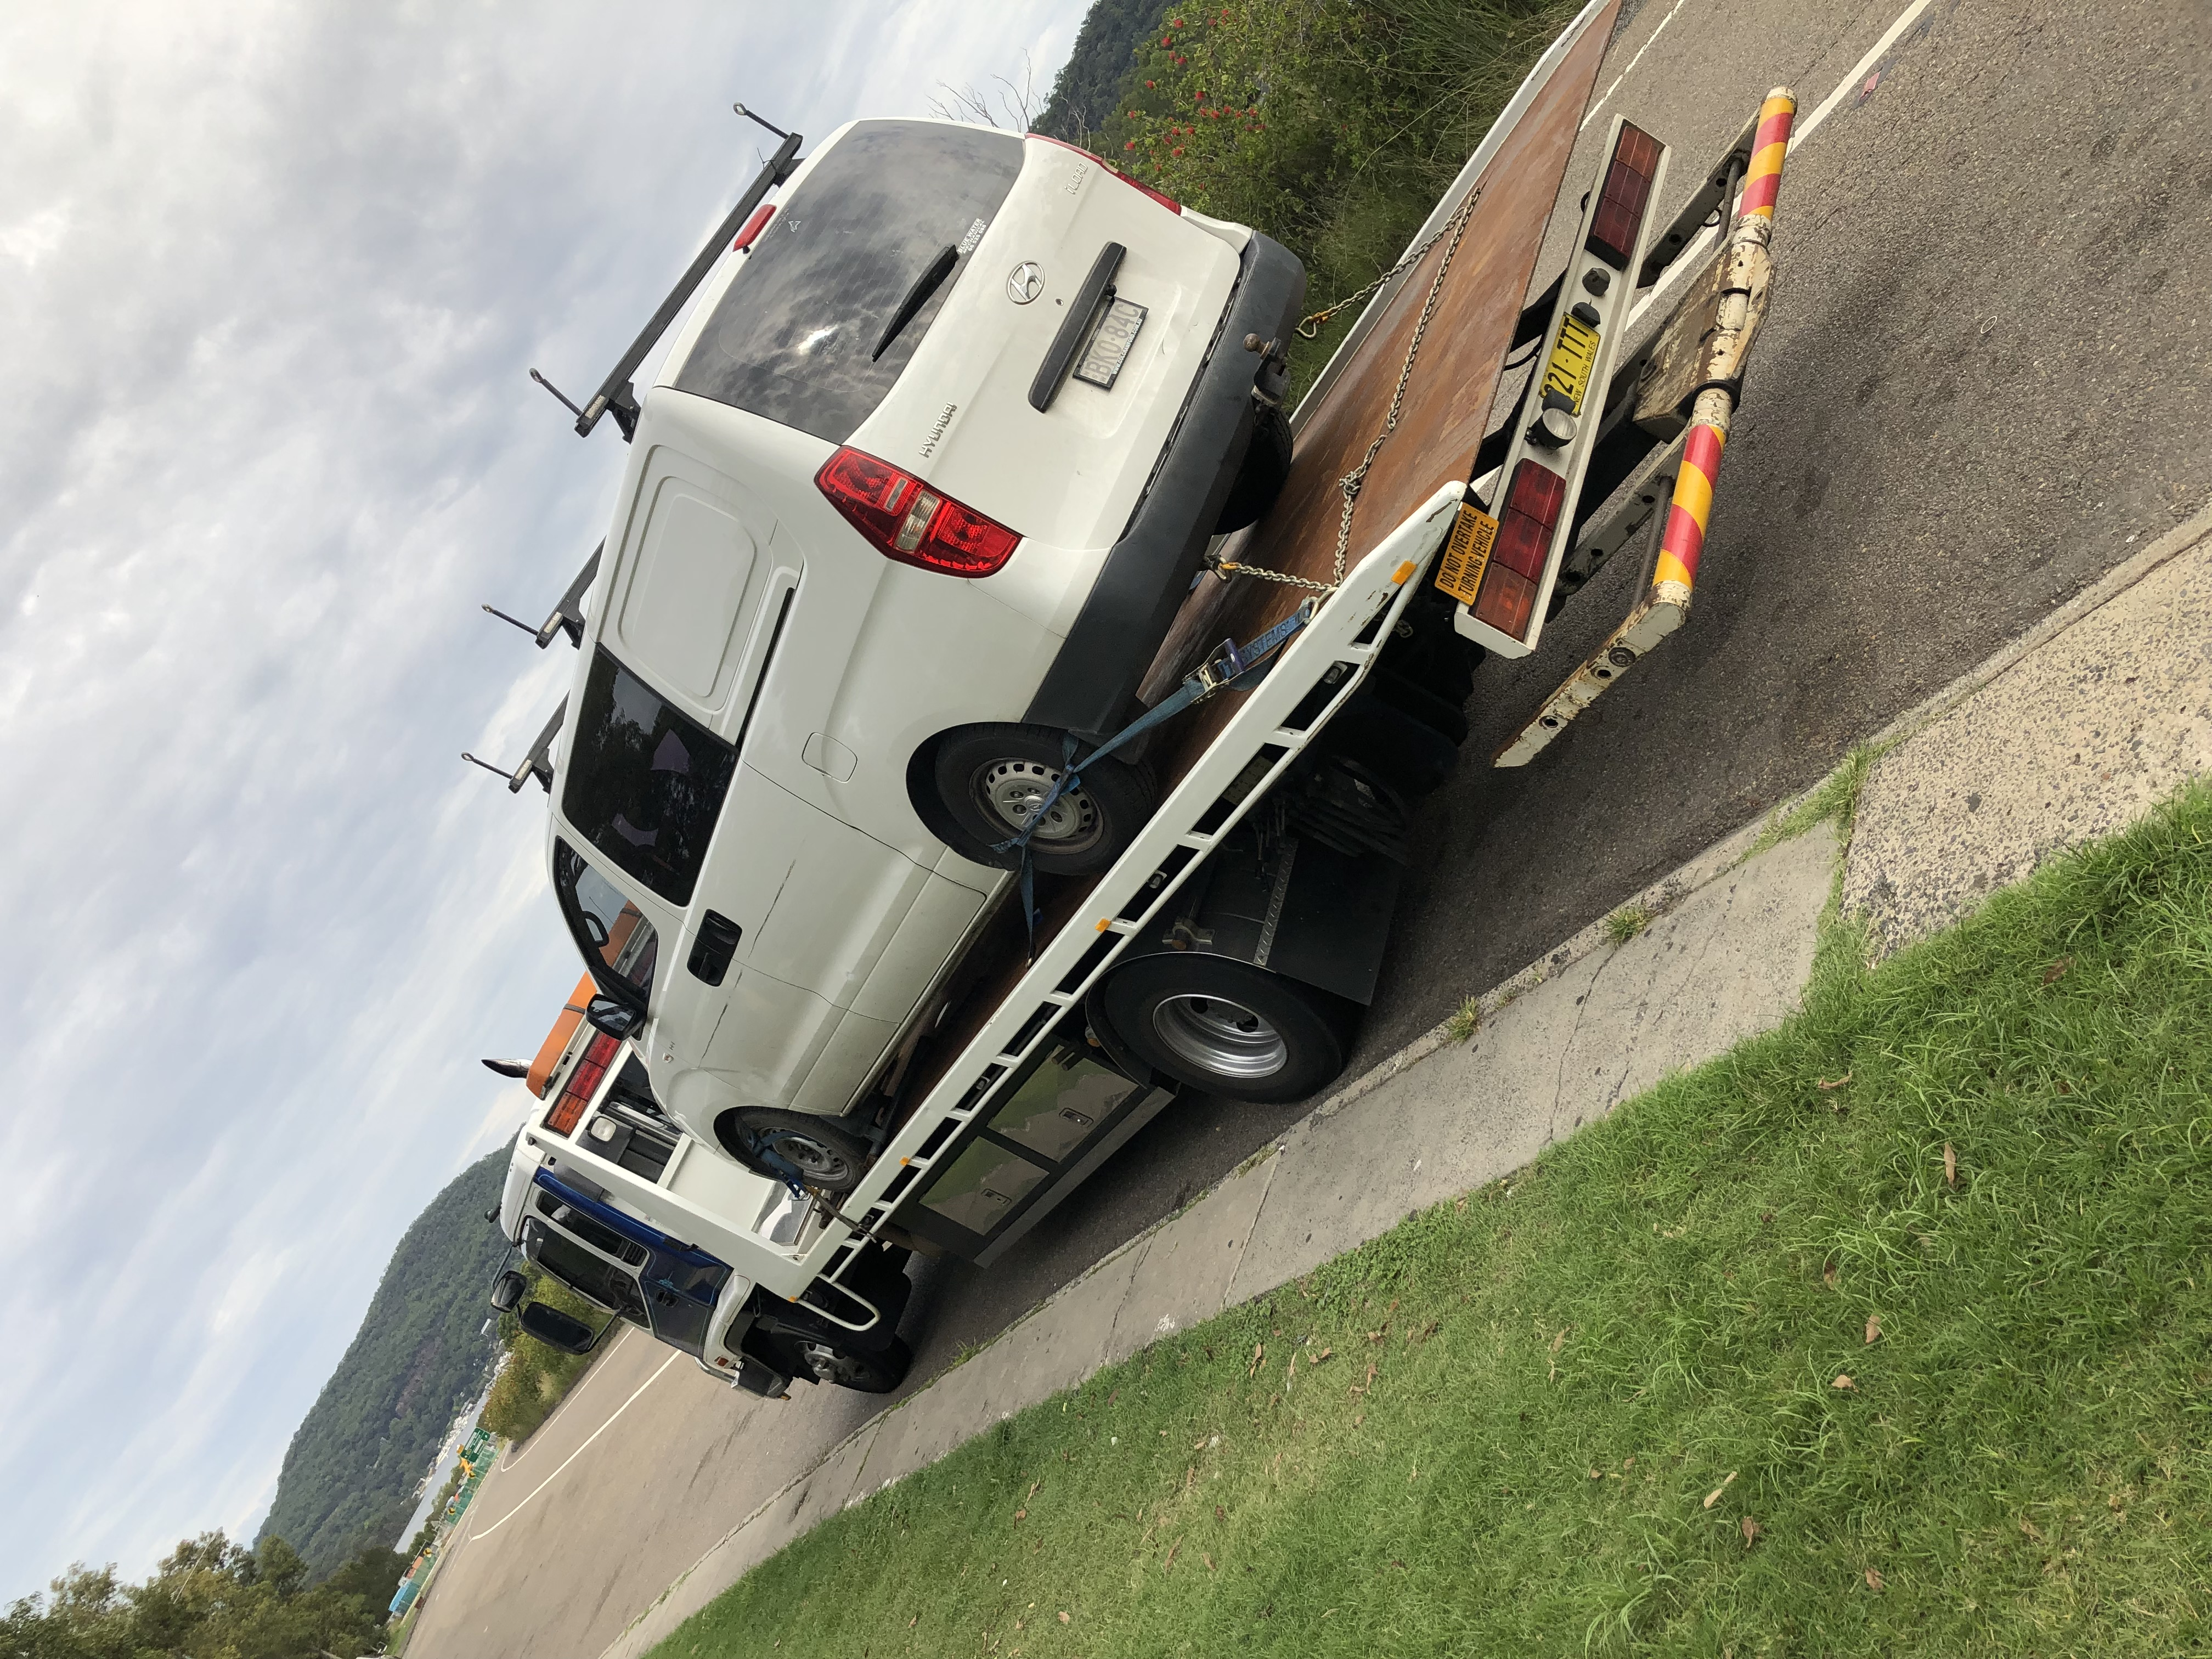 CAR REMOVAL-CASH FOR CARS -FREE REMOVAL SYDNEY WIDE- SMT TOWING